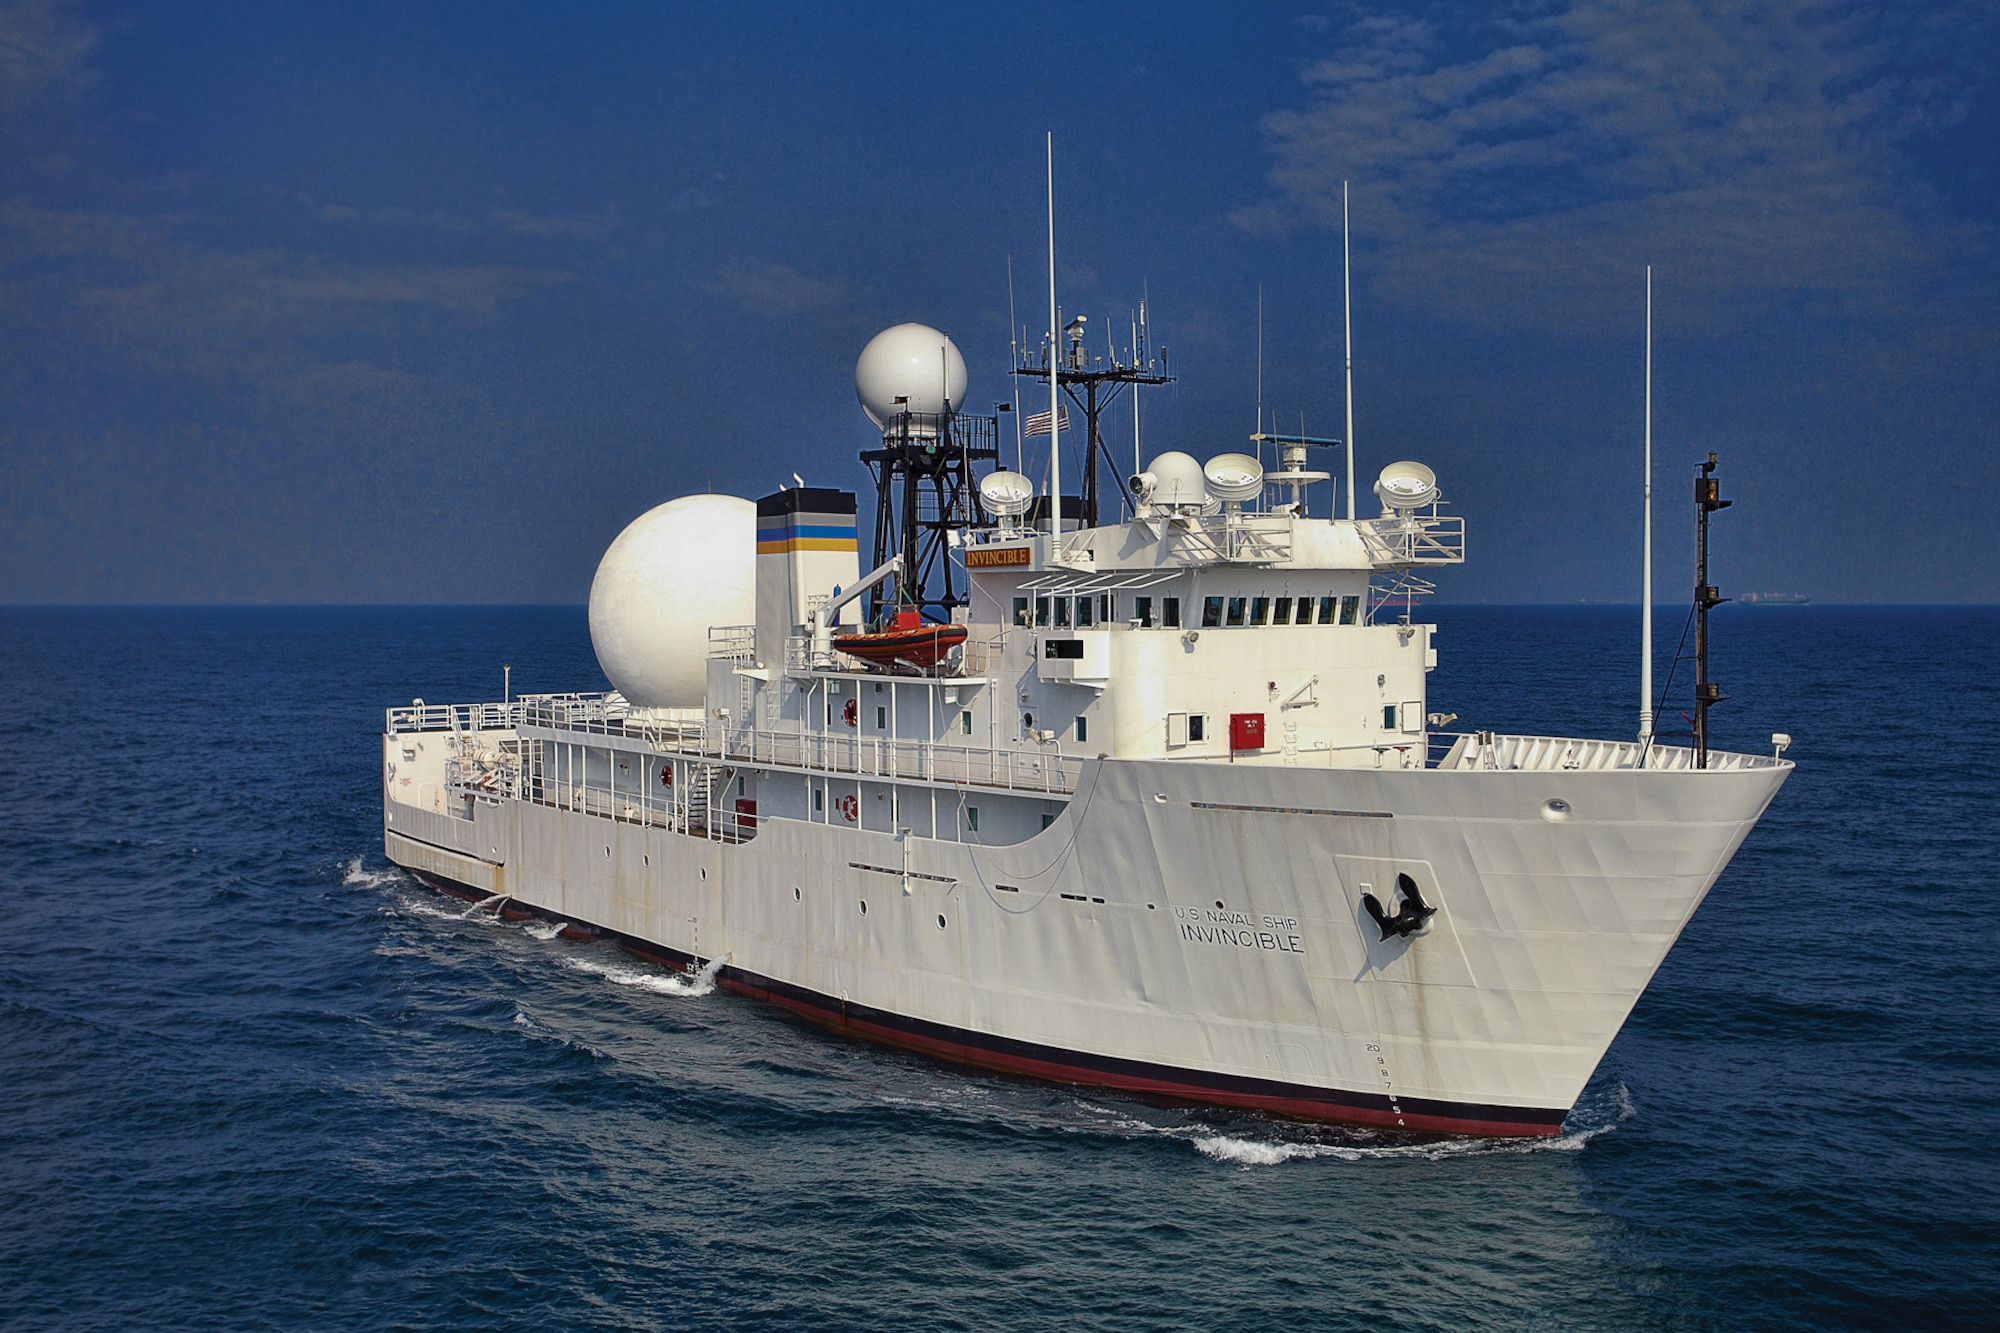 Military Sealift Command missile range instrumentation ship USNS Invincible makes way during sea trials following a regularly scheduled yard period.  The platform is designed to augment the U.S. Ballistic Missile Defense sensor network by providing target discrimination information to U.S. Strategic Command.  (U.S. Navy photo by Tommy Chia)